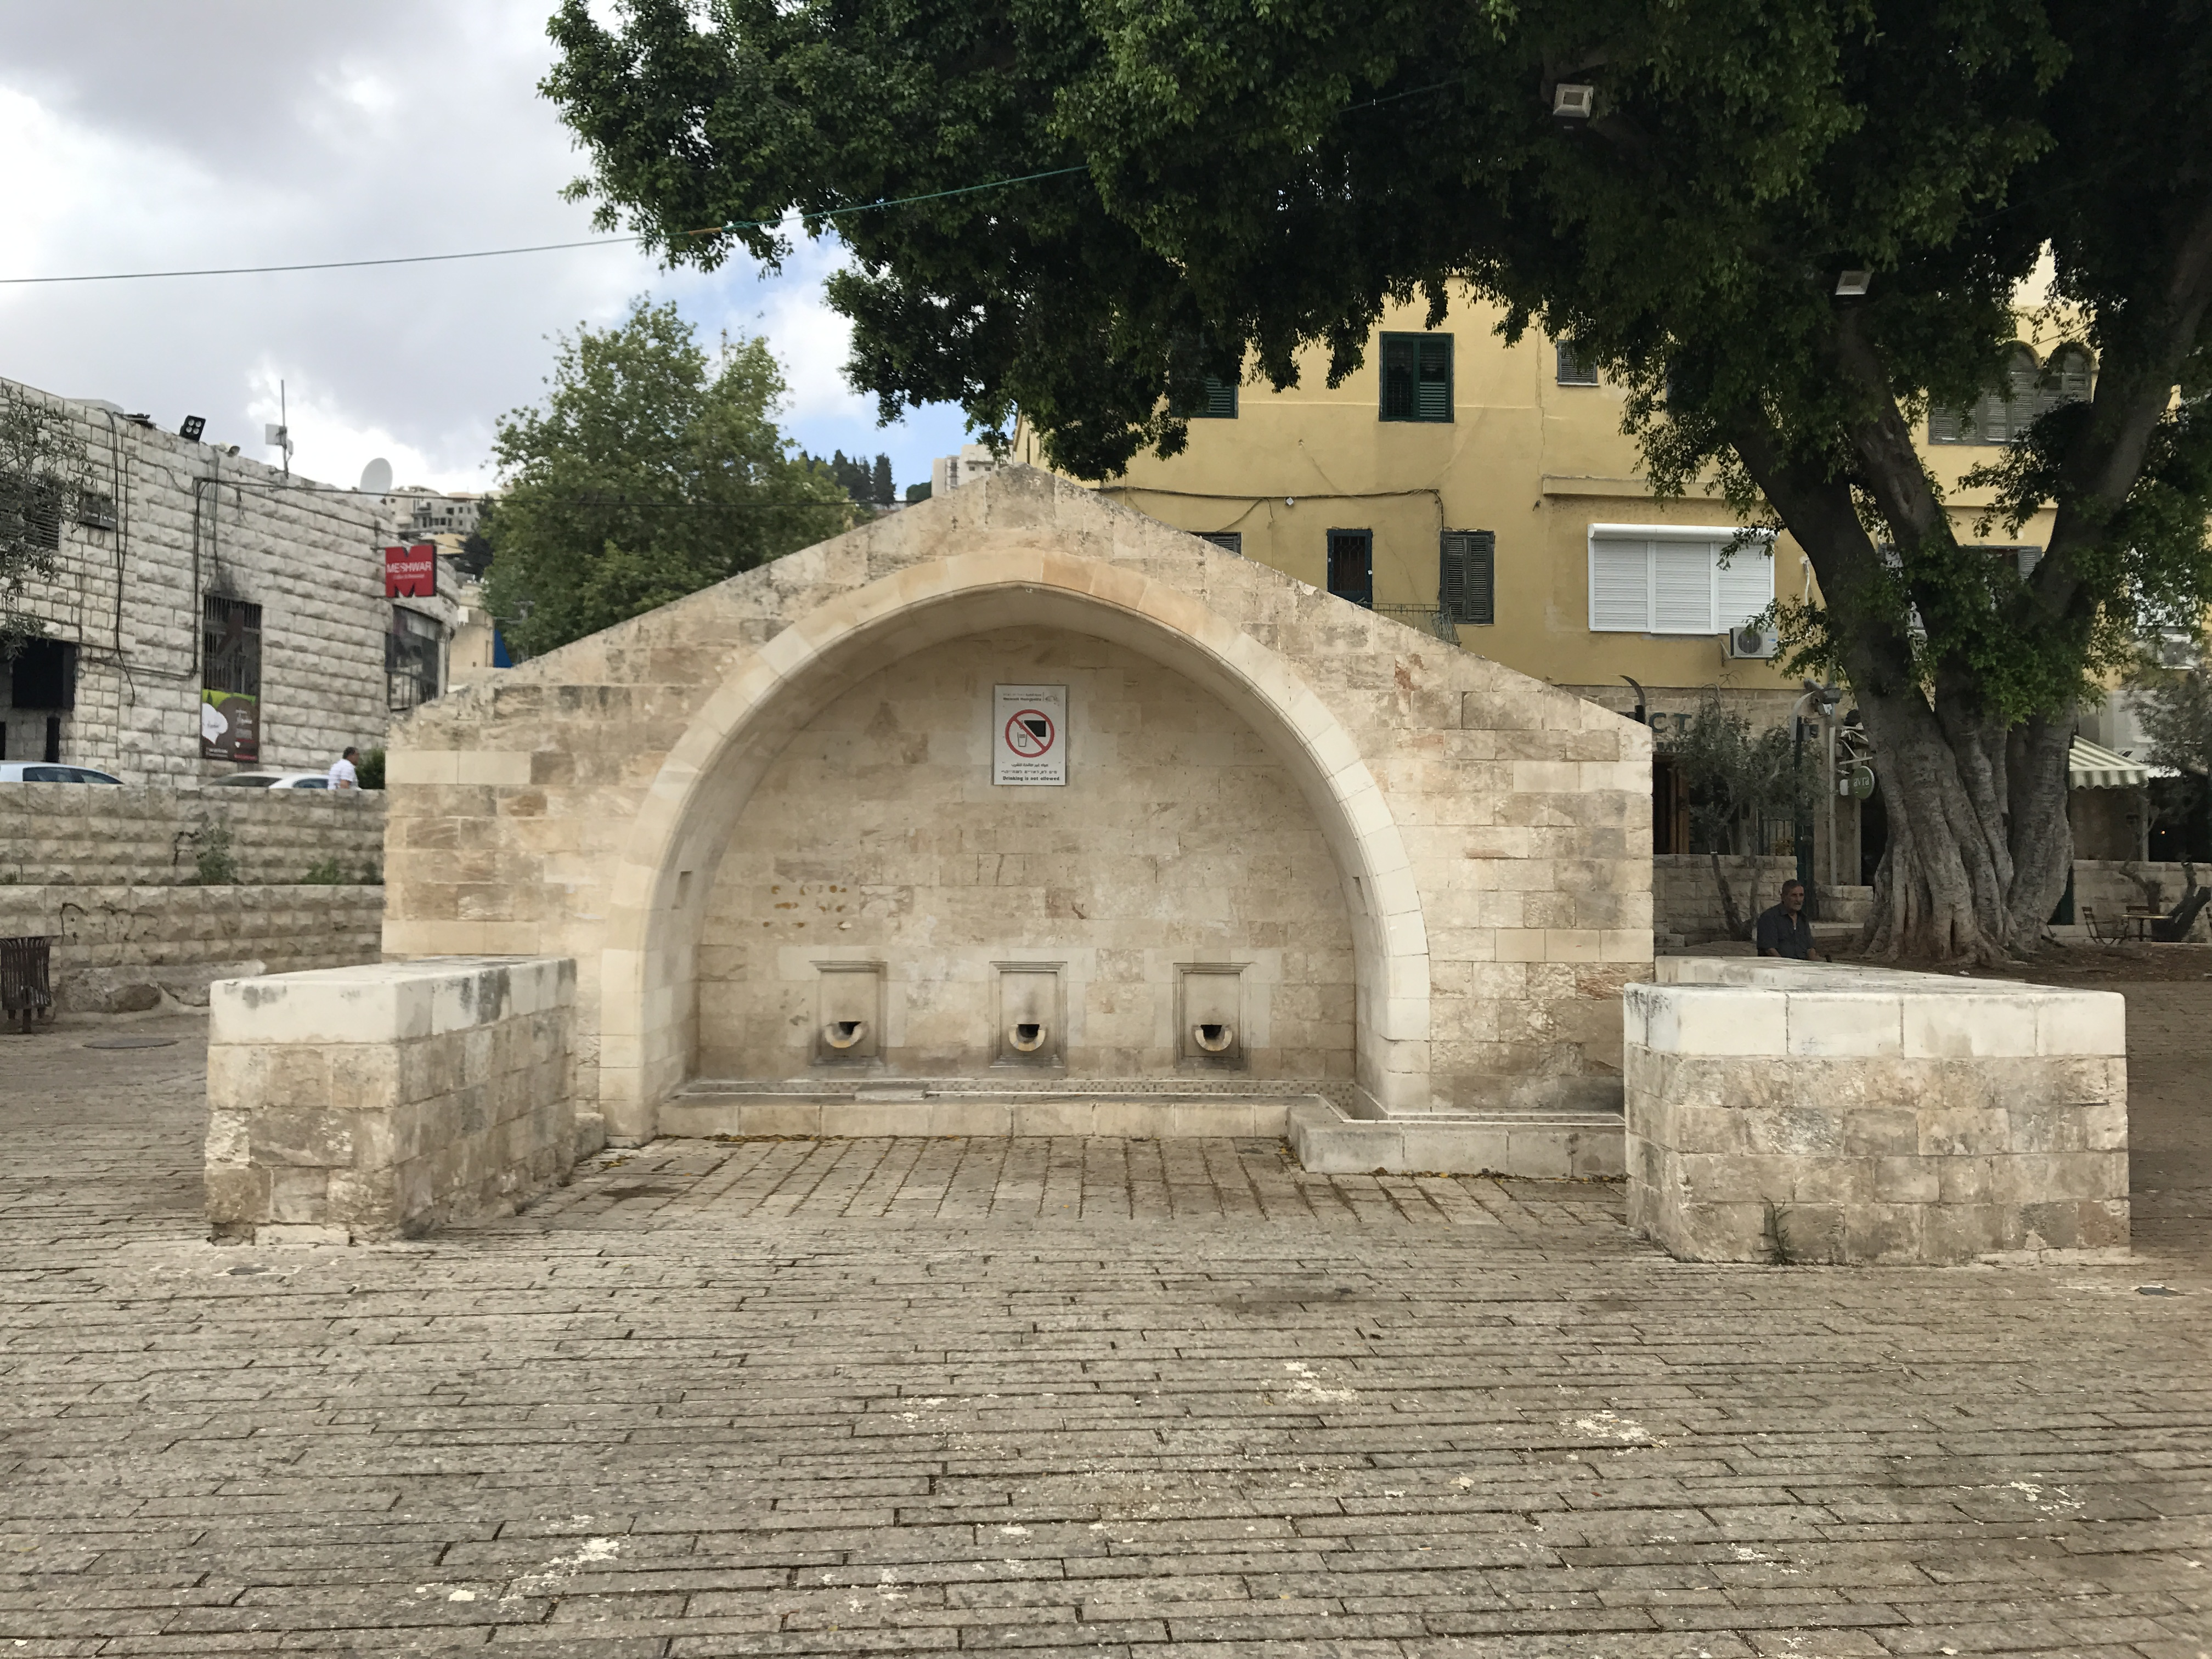 Mary's Well in Nazareth, Israel